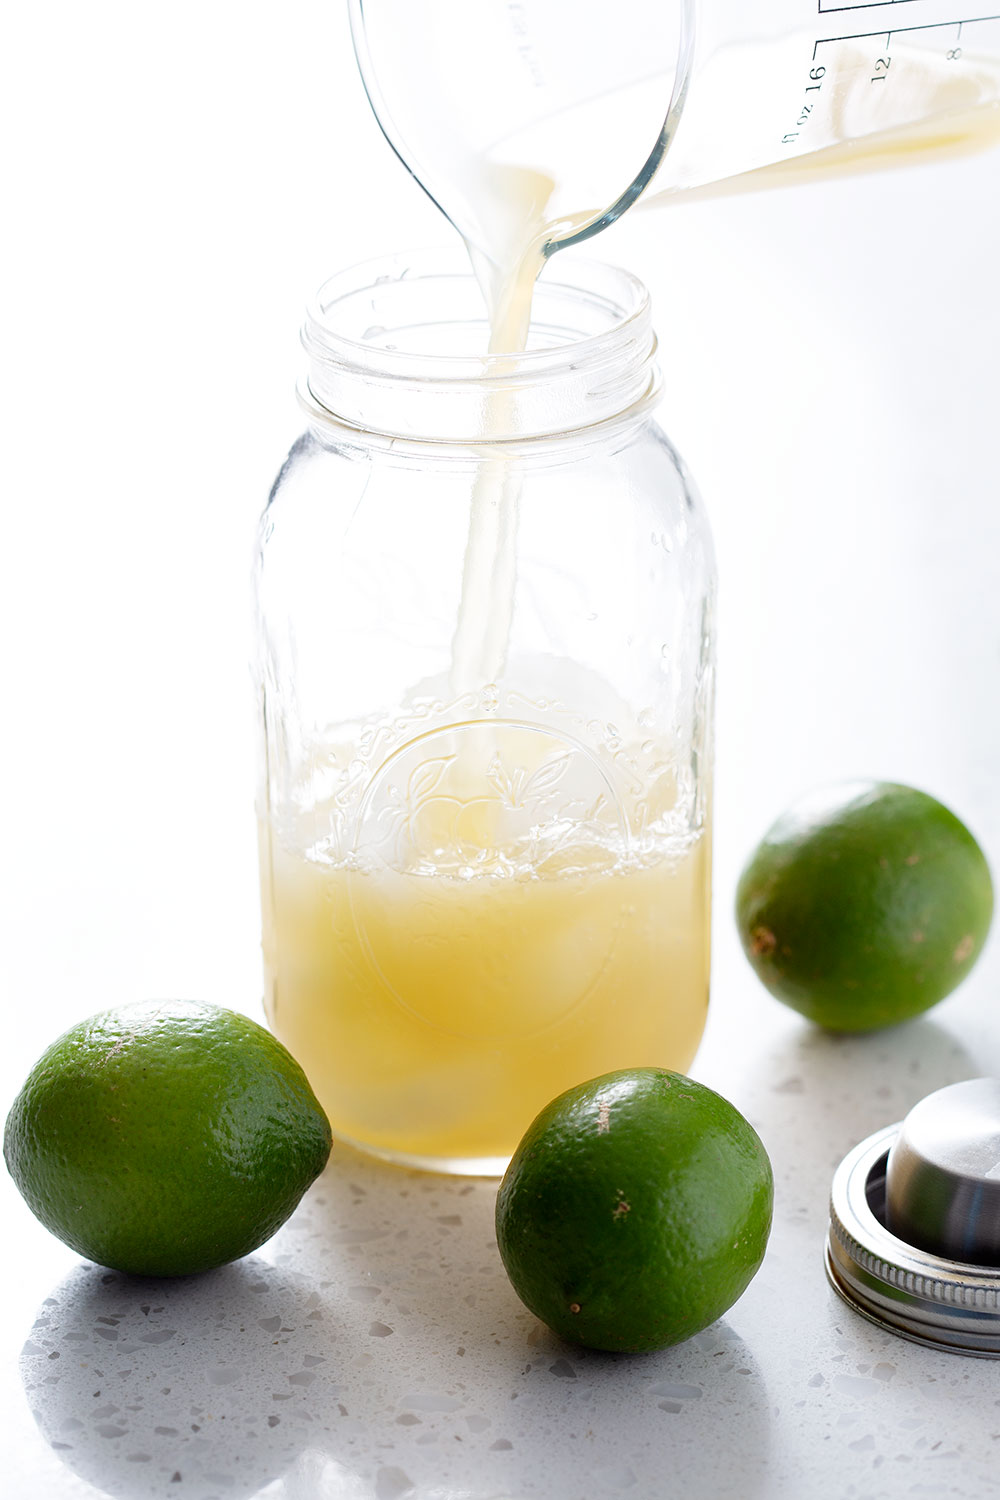 filling cocktail shaker with limes in front